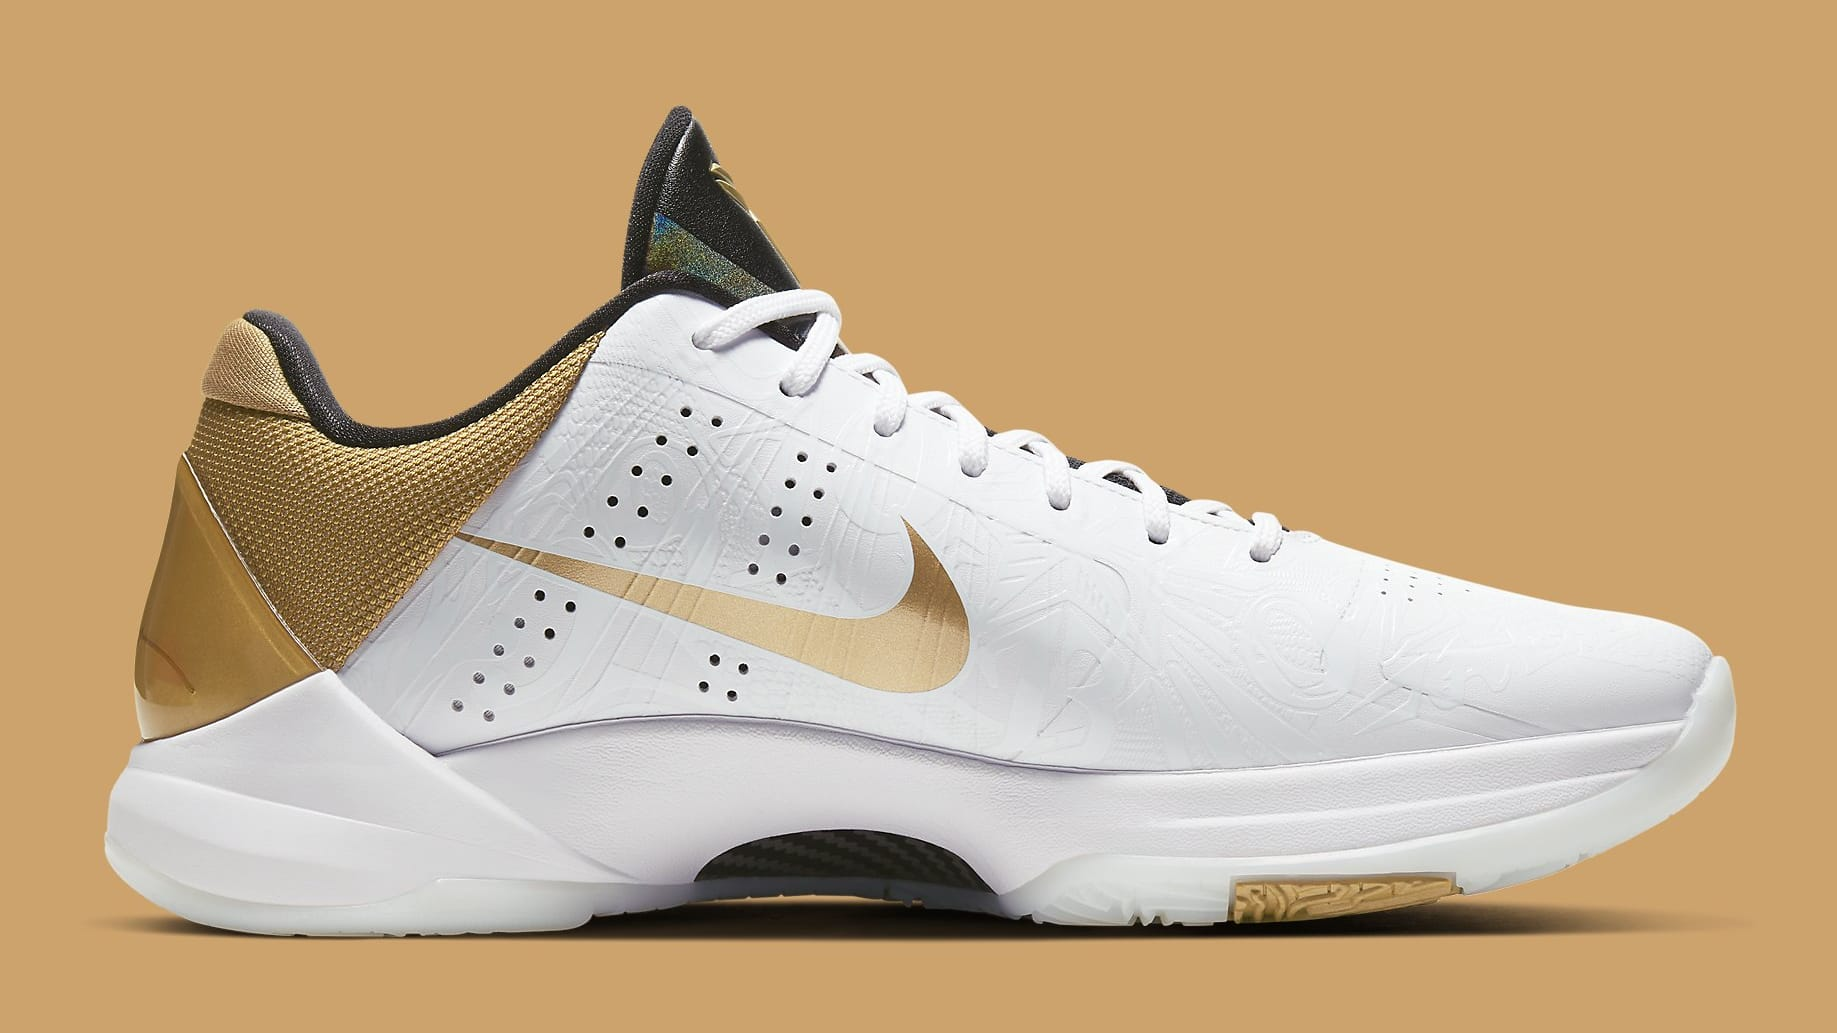 Nike Kobe 5 Big Stage Parade Release Date CT8014-100 Medial